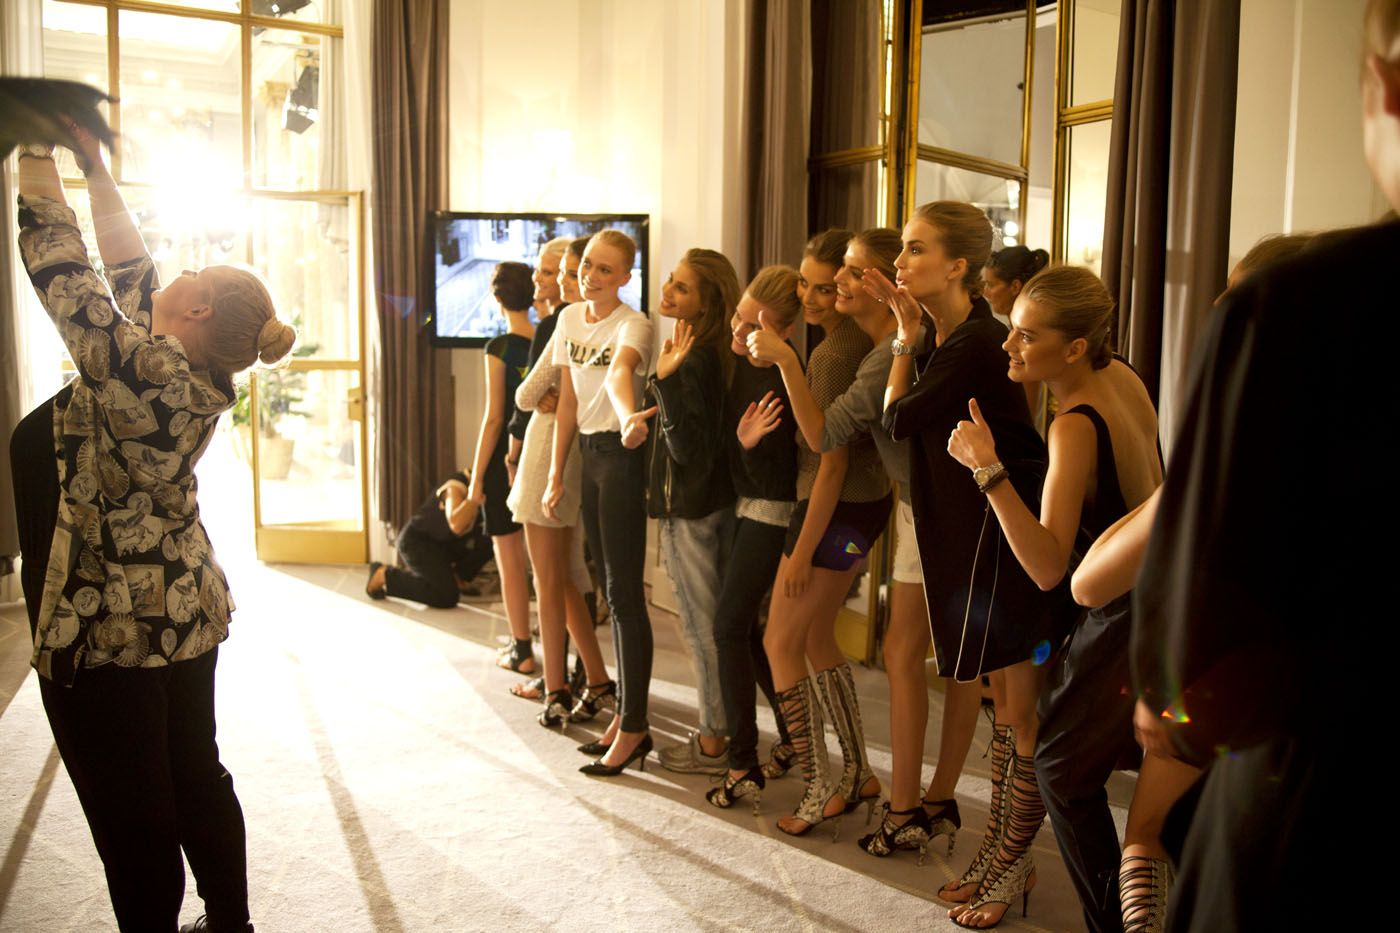 By Malene Birger Spring/Summer 2014 Collection.  Backstage at Hotel d'angleterre.  © Luka Rone